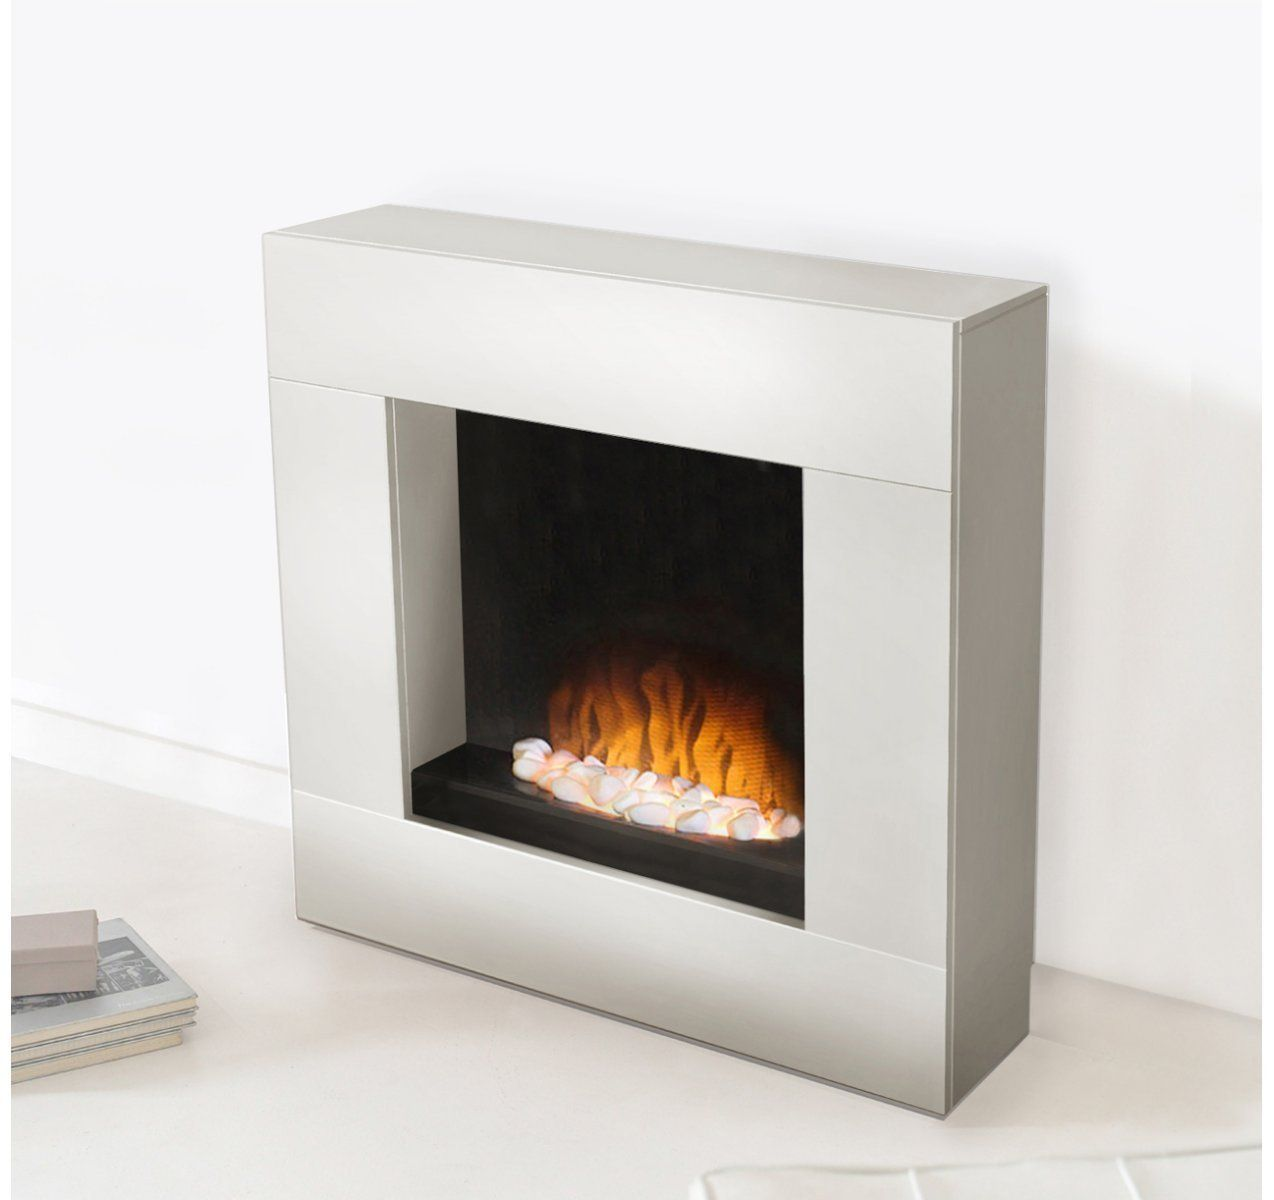 White Fireplace White Electric Fireplace Electric Fireplace Fireplace